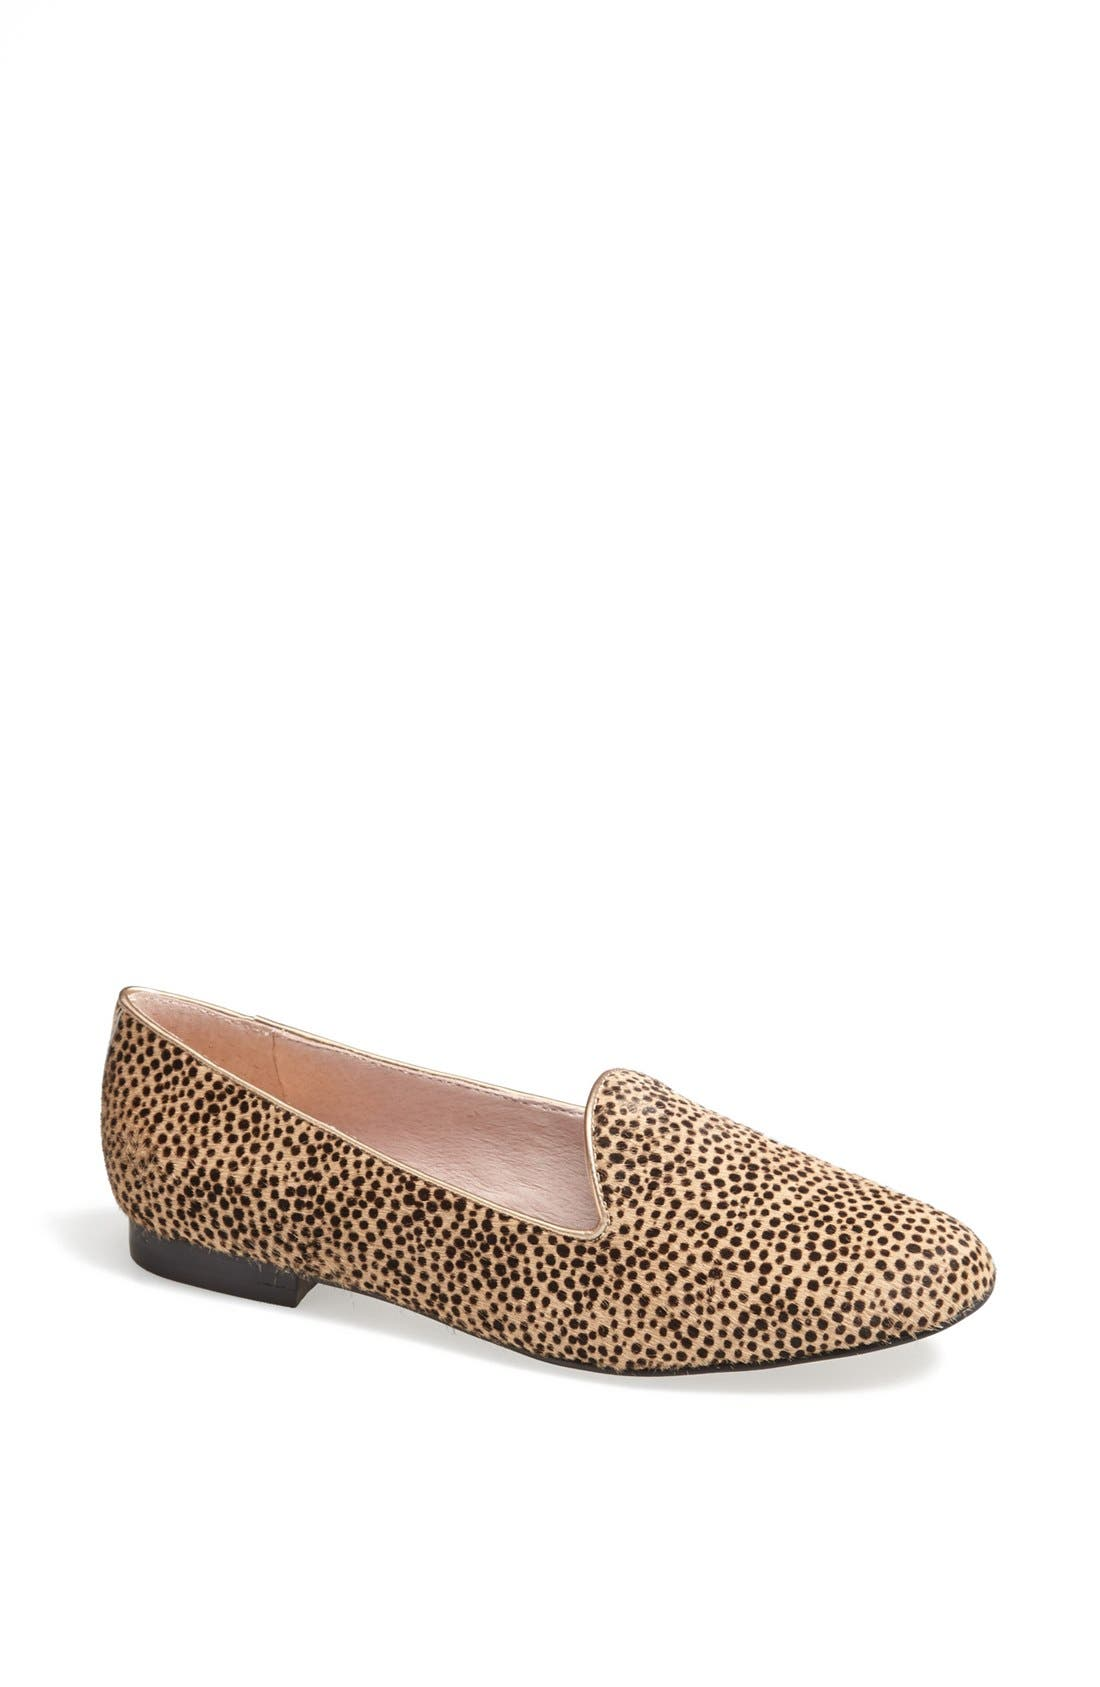 Alternate Image 1 Selected - Vince Camuto 'Edmonton' Calf Hair Flat